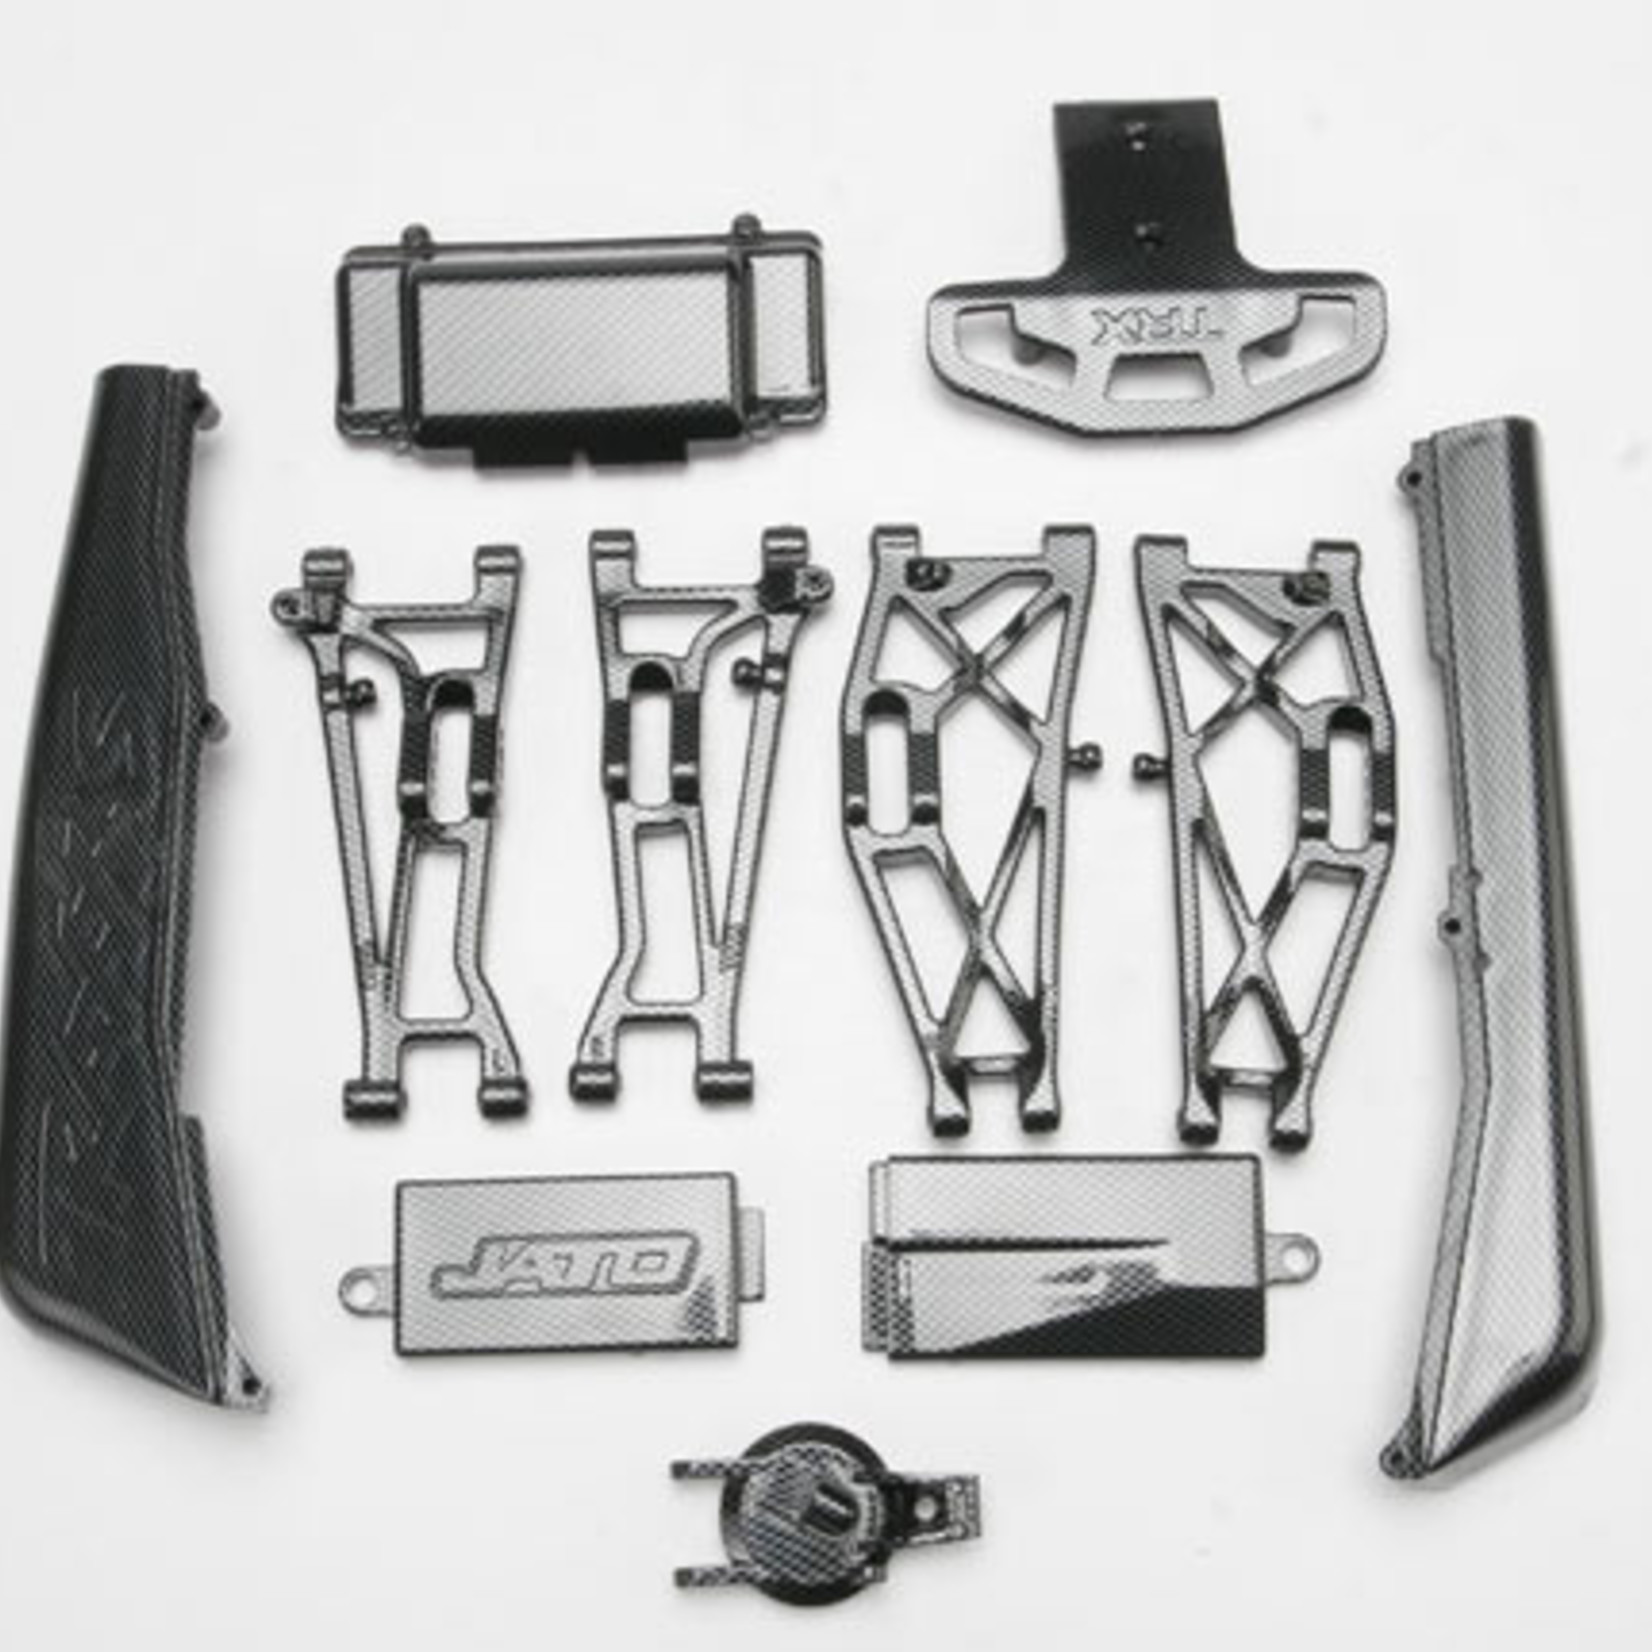 Traxxas TRA5522G Traxxas Complete Exo-Carbon Kit, Jato (Includes Rear & Mid-Chassis Battery Covers, Receiver Cover, Dirt Guards, Suspension Arms, Front Bumper, & Fuel Tank Cap)